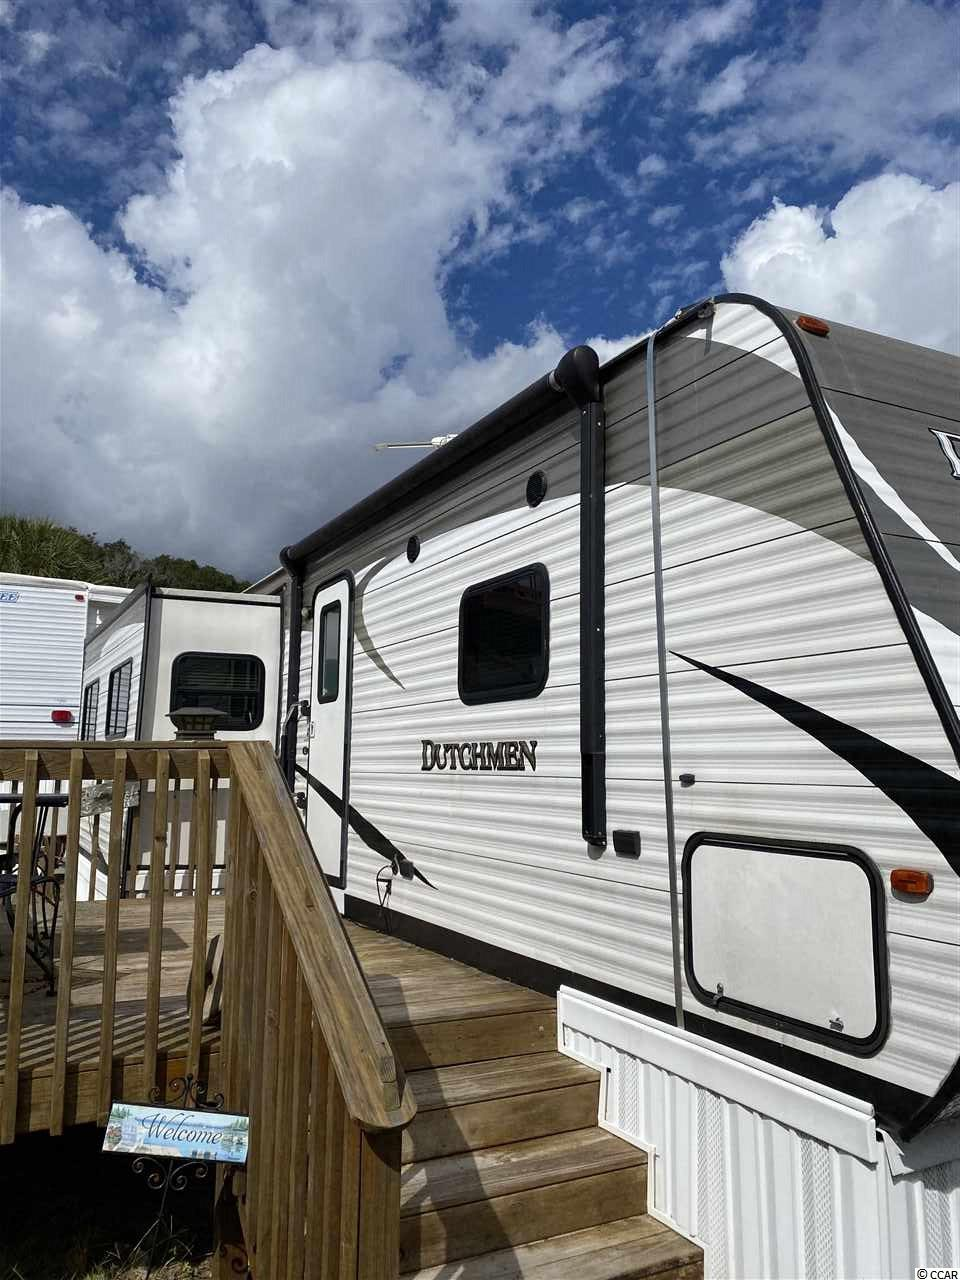 Beautiful semi permanent camper right on the beach !!! This 5 year old home is located in Apache Oceanfront Campground, with great amenities like On site restaurant with entertainment on the Fishing pier.  Bait shop.  Play ground.  Large outdoor pool, splash pool & hot tub.  24 hour gate guard.  Furniture and Transfer fee included !! Has heat pump to blow central heat and air in addition to roof AC. Propane stove and oven.  Use of sewer and water is included with lot fees, as well as lawn service & trash removal.  Queen size sleeper sofa in living room, right next to the electric fireplace.  Queen size bed, 8 foot bedroom closet and dresser.  Sleeps 4 comfortably.     Close to all the hotspots like Ocean Annie's Beach Bar, Flip Flops, Bimini's Seafood restaurant and the New Soho sushi and steaks on the water way.  Arcade, Laundry Facilities, Golf Cart Rentals, Beach Shuttle Service, close to golf, groceries, and restaurants.  Steps away from beach !  Come buy your affordable new home by the Atlantic Ocean !!!